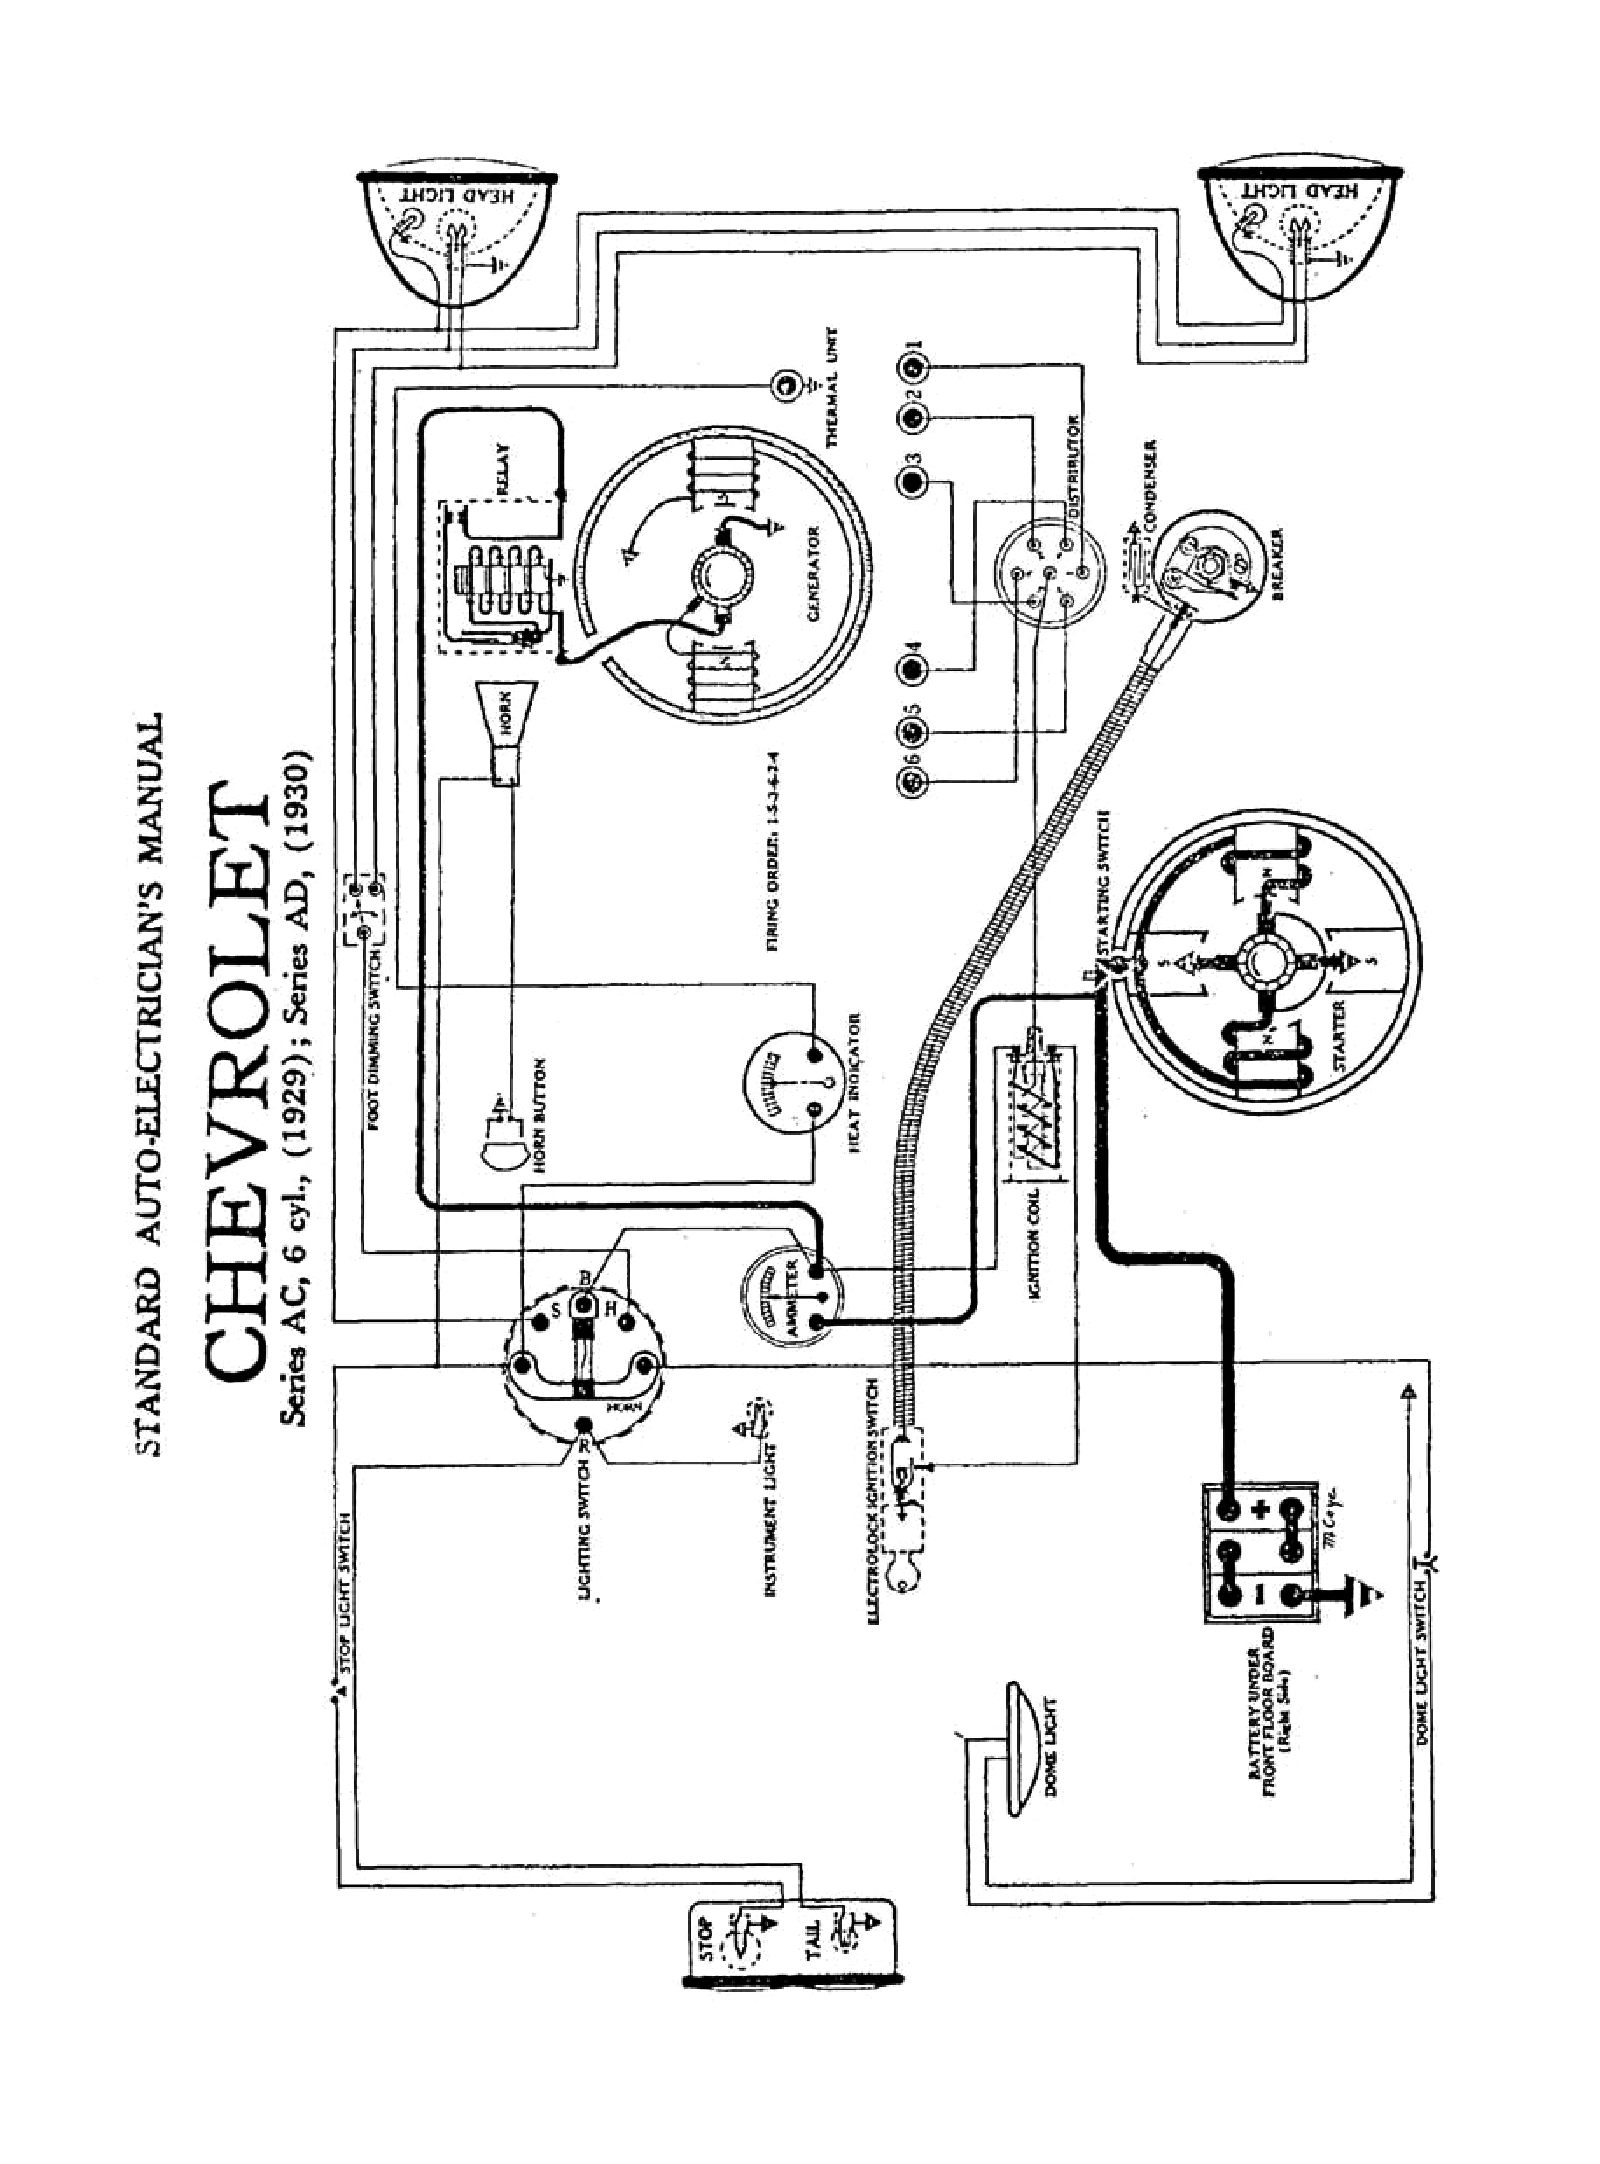 2930wiring chevy wiring diagrams tesla model s wiring harness at readyjetset.co